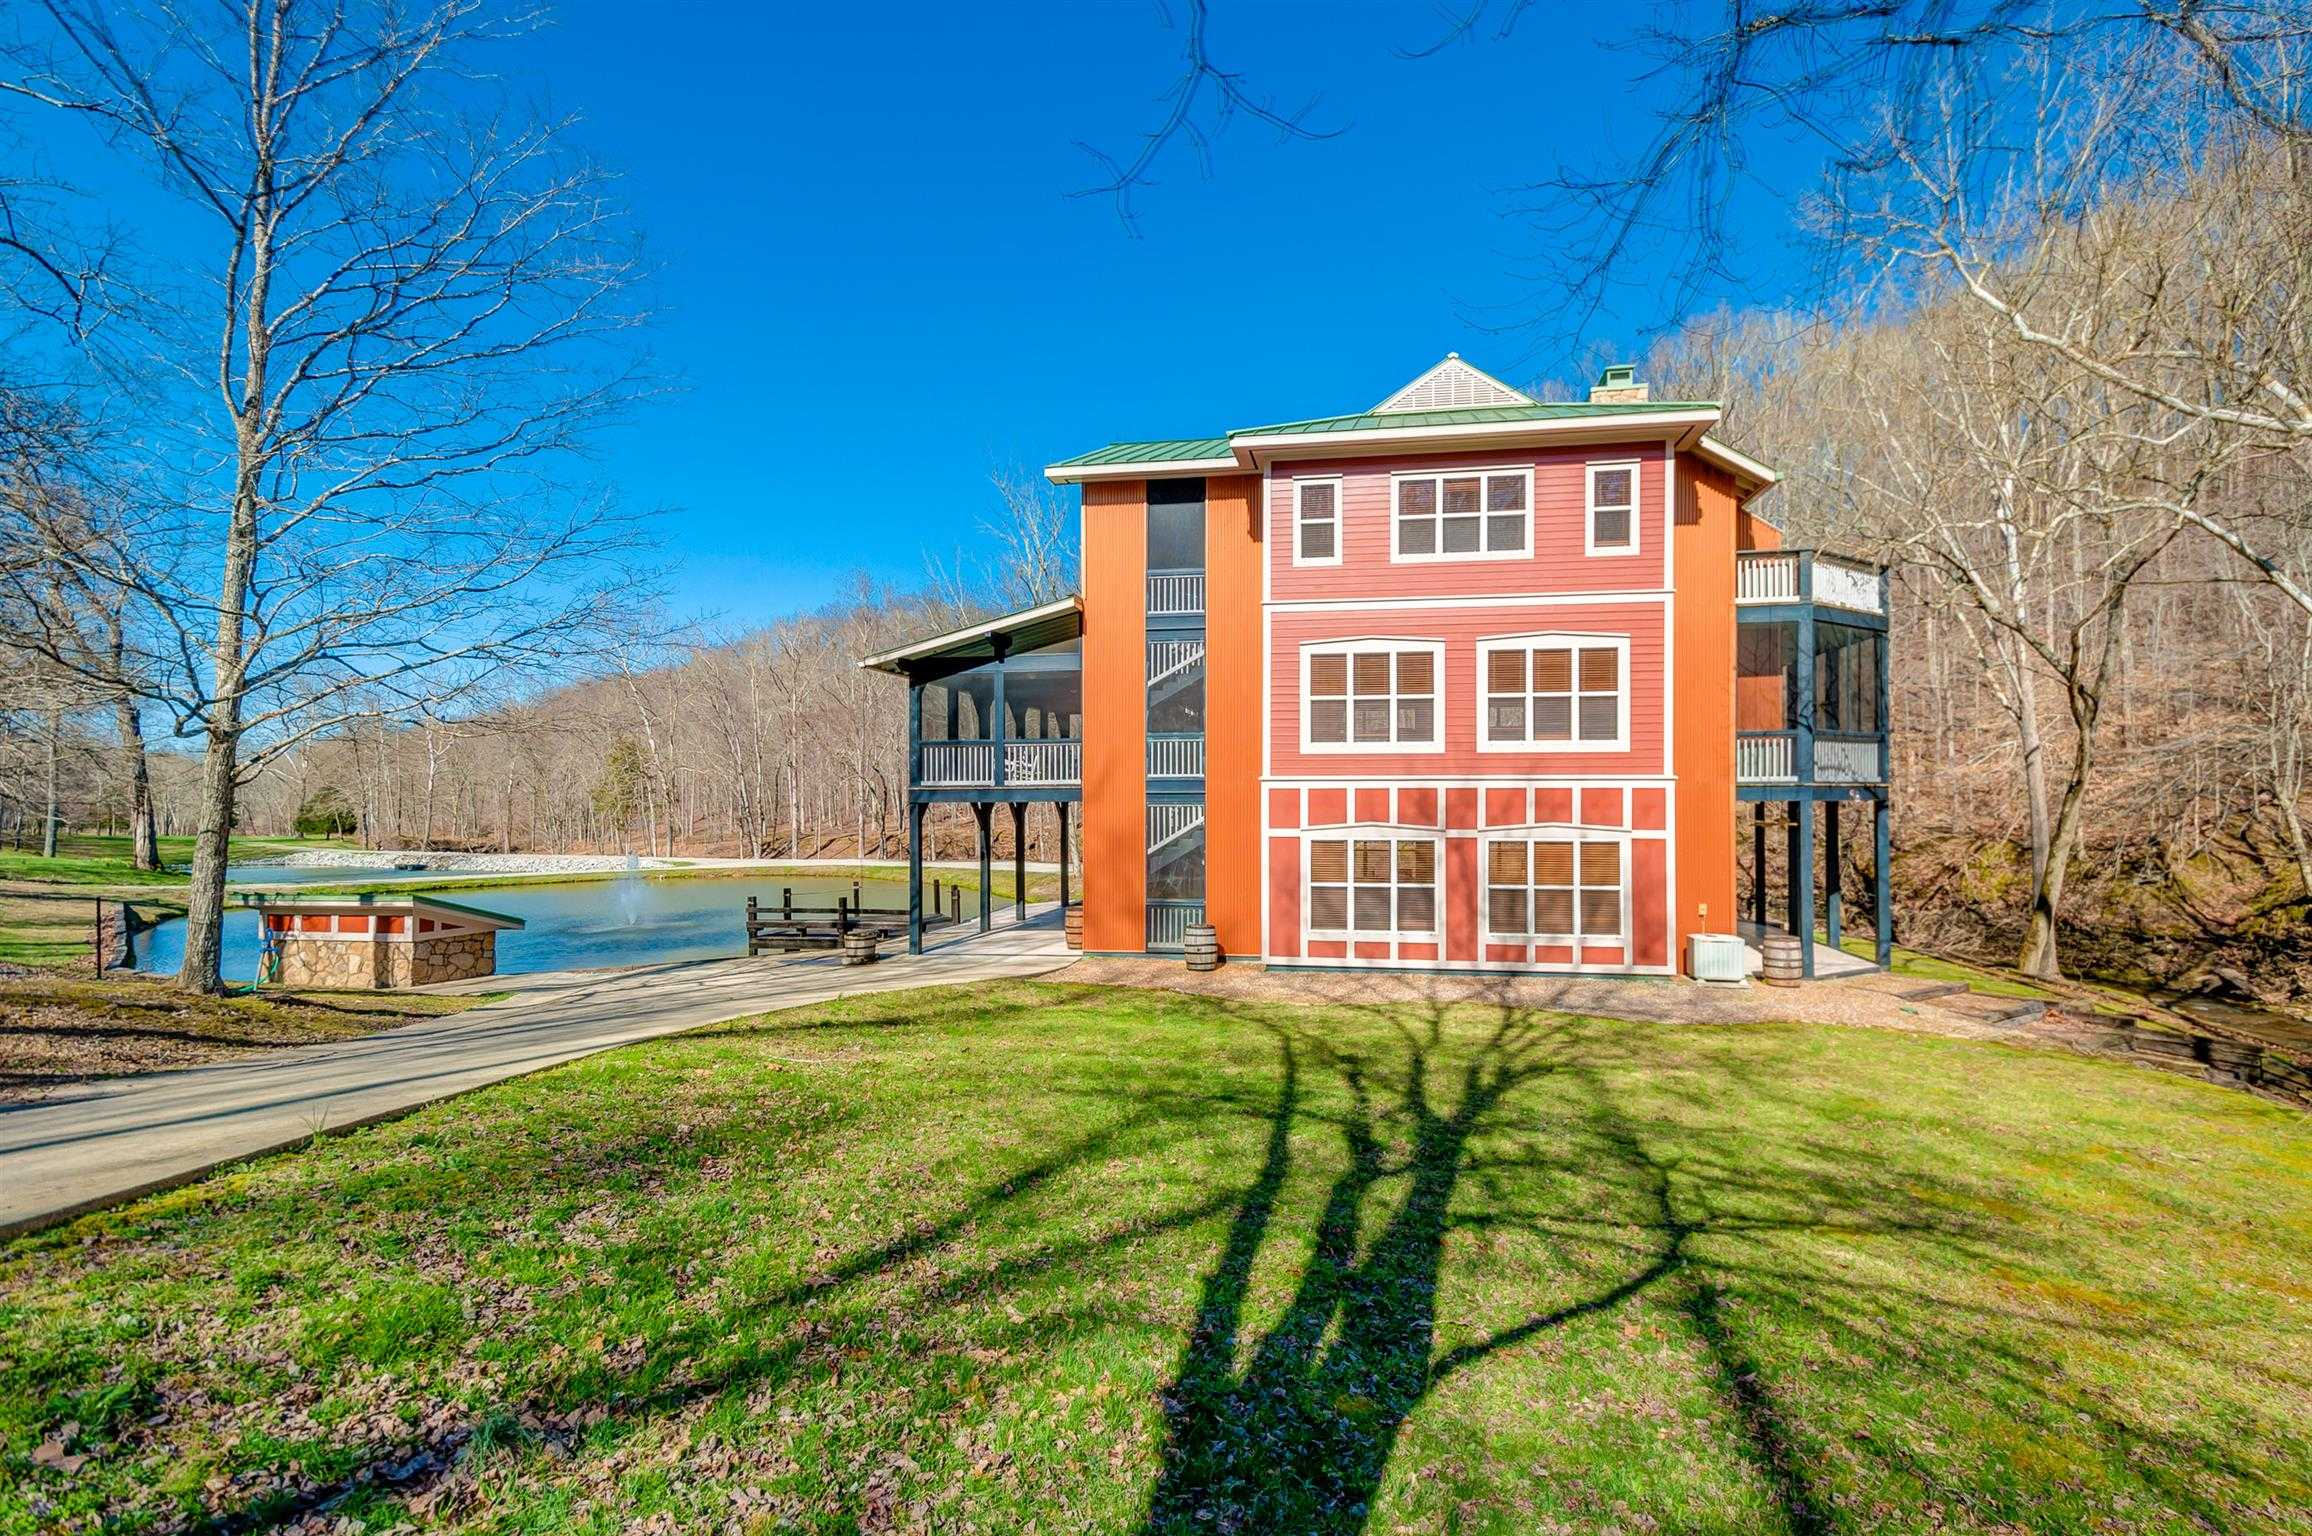 $2,050,000 - 2Br/3Ba -  for Sale in 138 Ac W/ Unique Home, Franklin